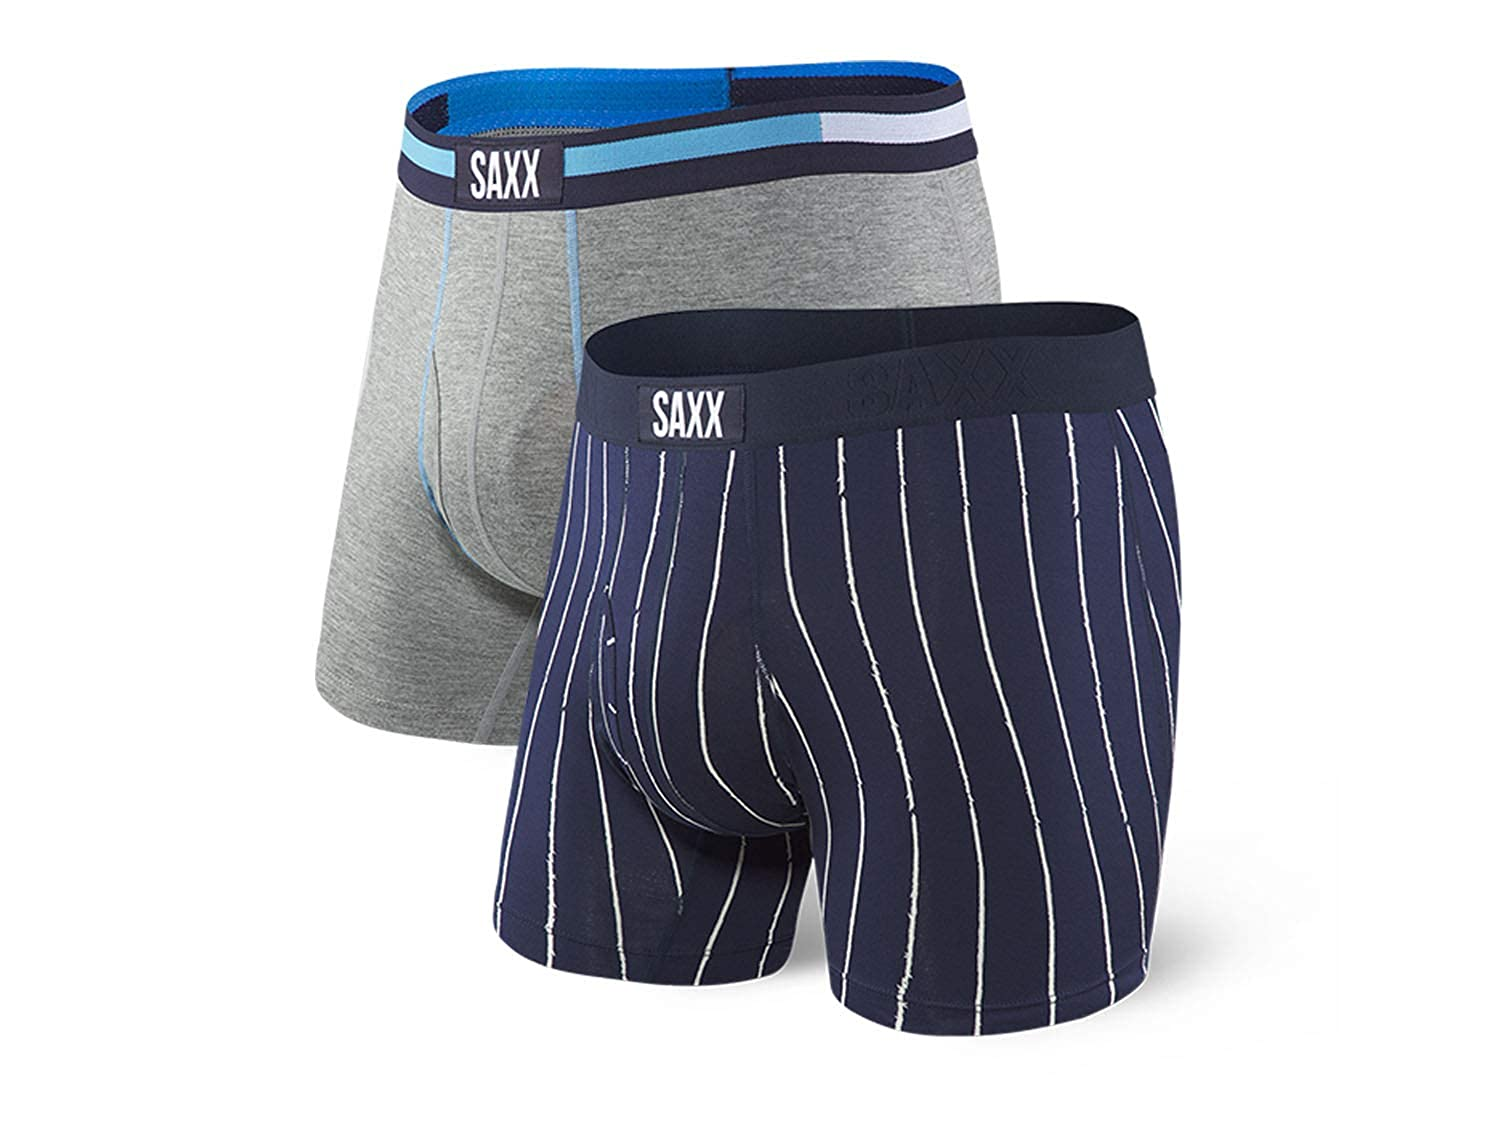 Pack of 2 Saxx Underwear Mens Boxer Briefs Ultra Boxer Briefs with Built-in Ballpark Pouch Support